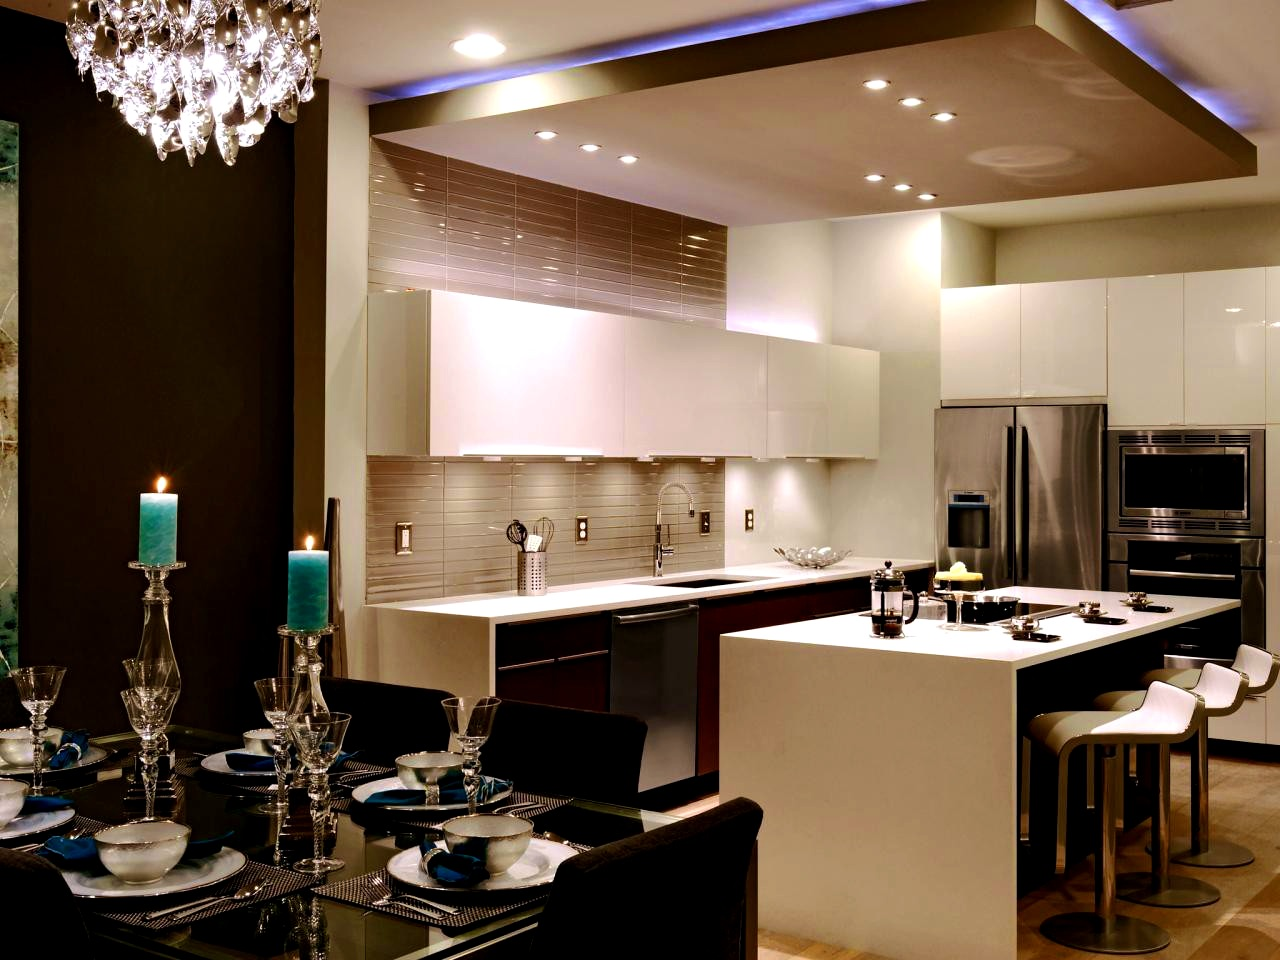 7 Gorgeous Kitchens Designs With Gypsum False Ceiling & lights